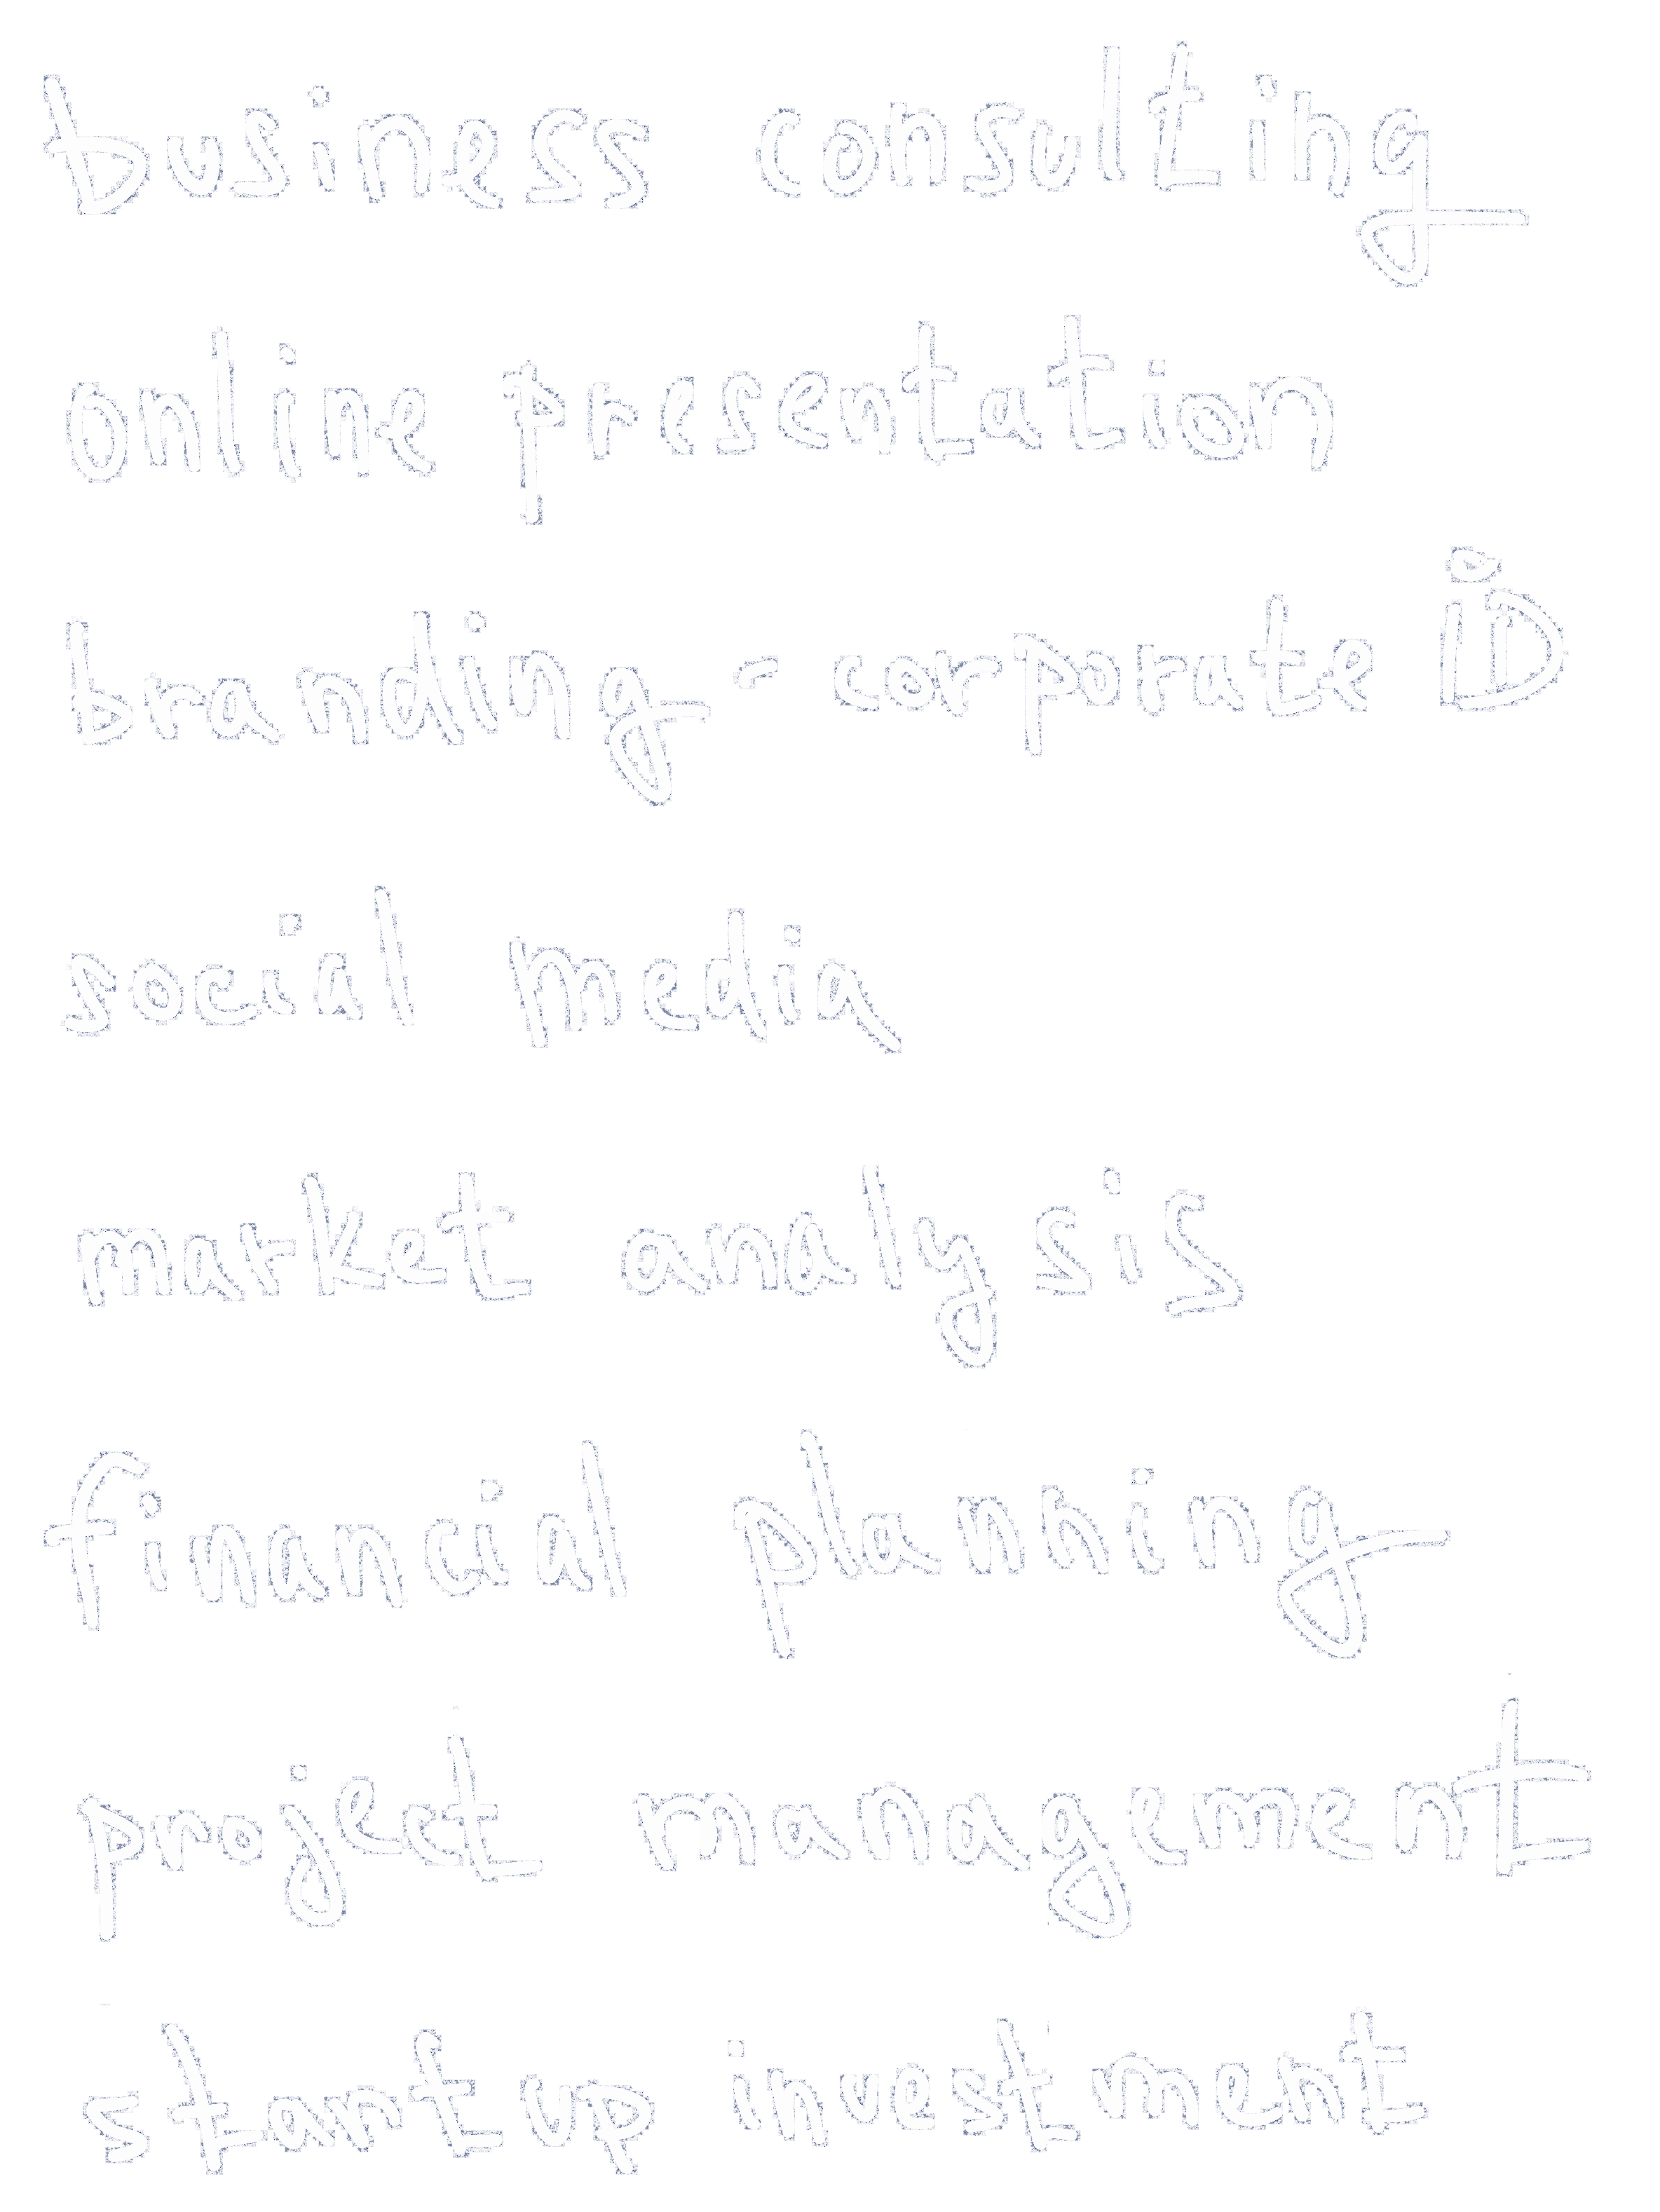 Market analysis, Business consulting, Financial planning,Project management, Online presentation, Branding, Personal coaching